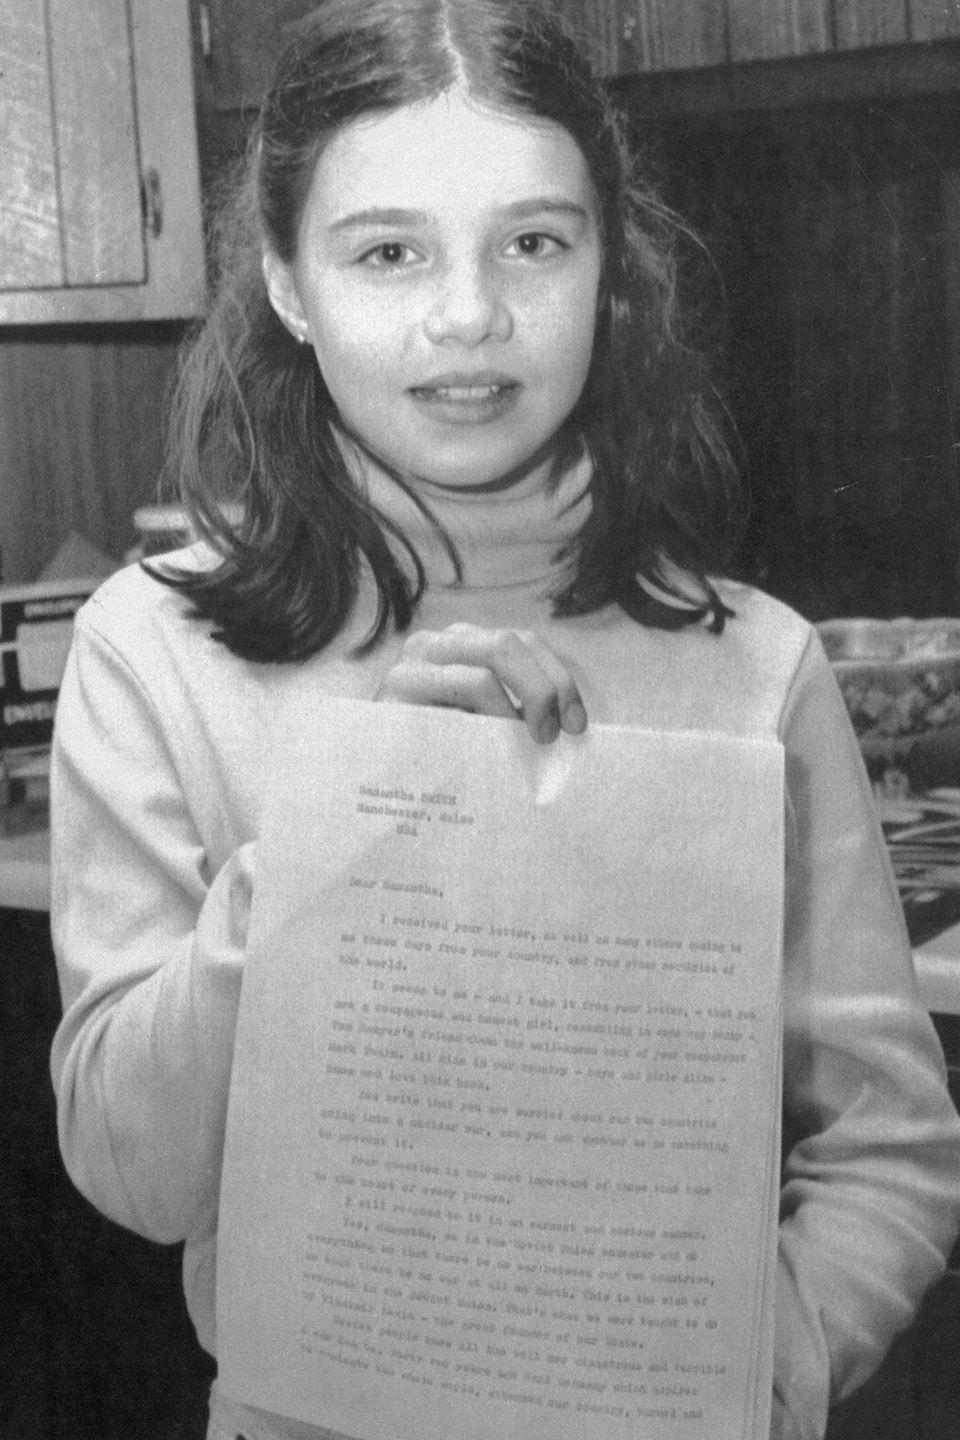 "<p>Further proof that the words of a child can make a huge impact, Smith was only 10 when she eased Cold War tensions between the United States and Russia with a single letter. She wrote a note to CPSU General Secretary Yuri Andropov suggesting that both countries could co-exist peacefully, which ended up getting published in a Soviet newspaper. Andropov responded with an invitation for Smith and her family to visit his country. This experience earned her the role of ""America's Youngest Ambassador,"" and she later brought her message of peace to Japan. She also pursued a television career as an actress and as a special correspondent for the Disney Channel covering the 1984 presidential election. Following her untimely death at 13 in a plane crash, her achievements were celebrated in her Maine hometown and in Russia where a monument was built in her honor.</p>"